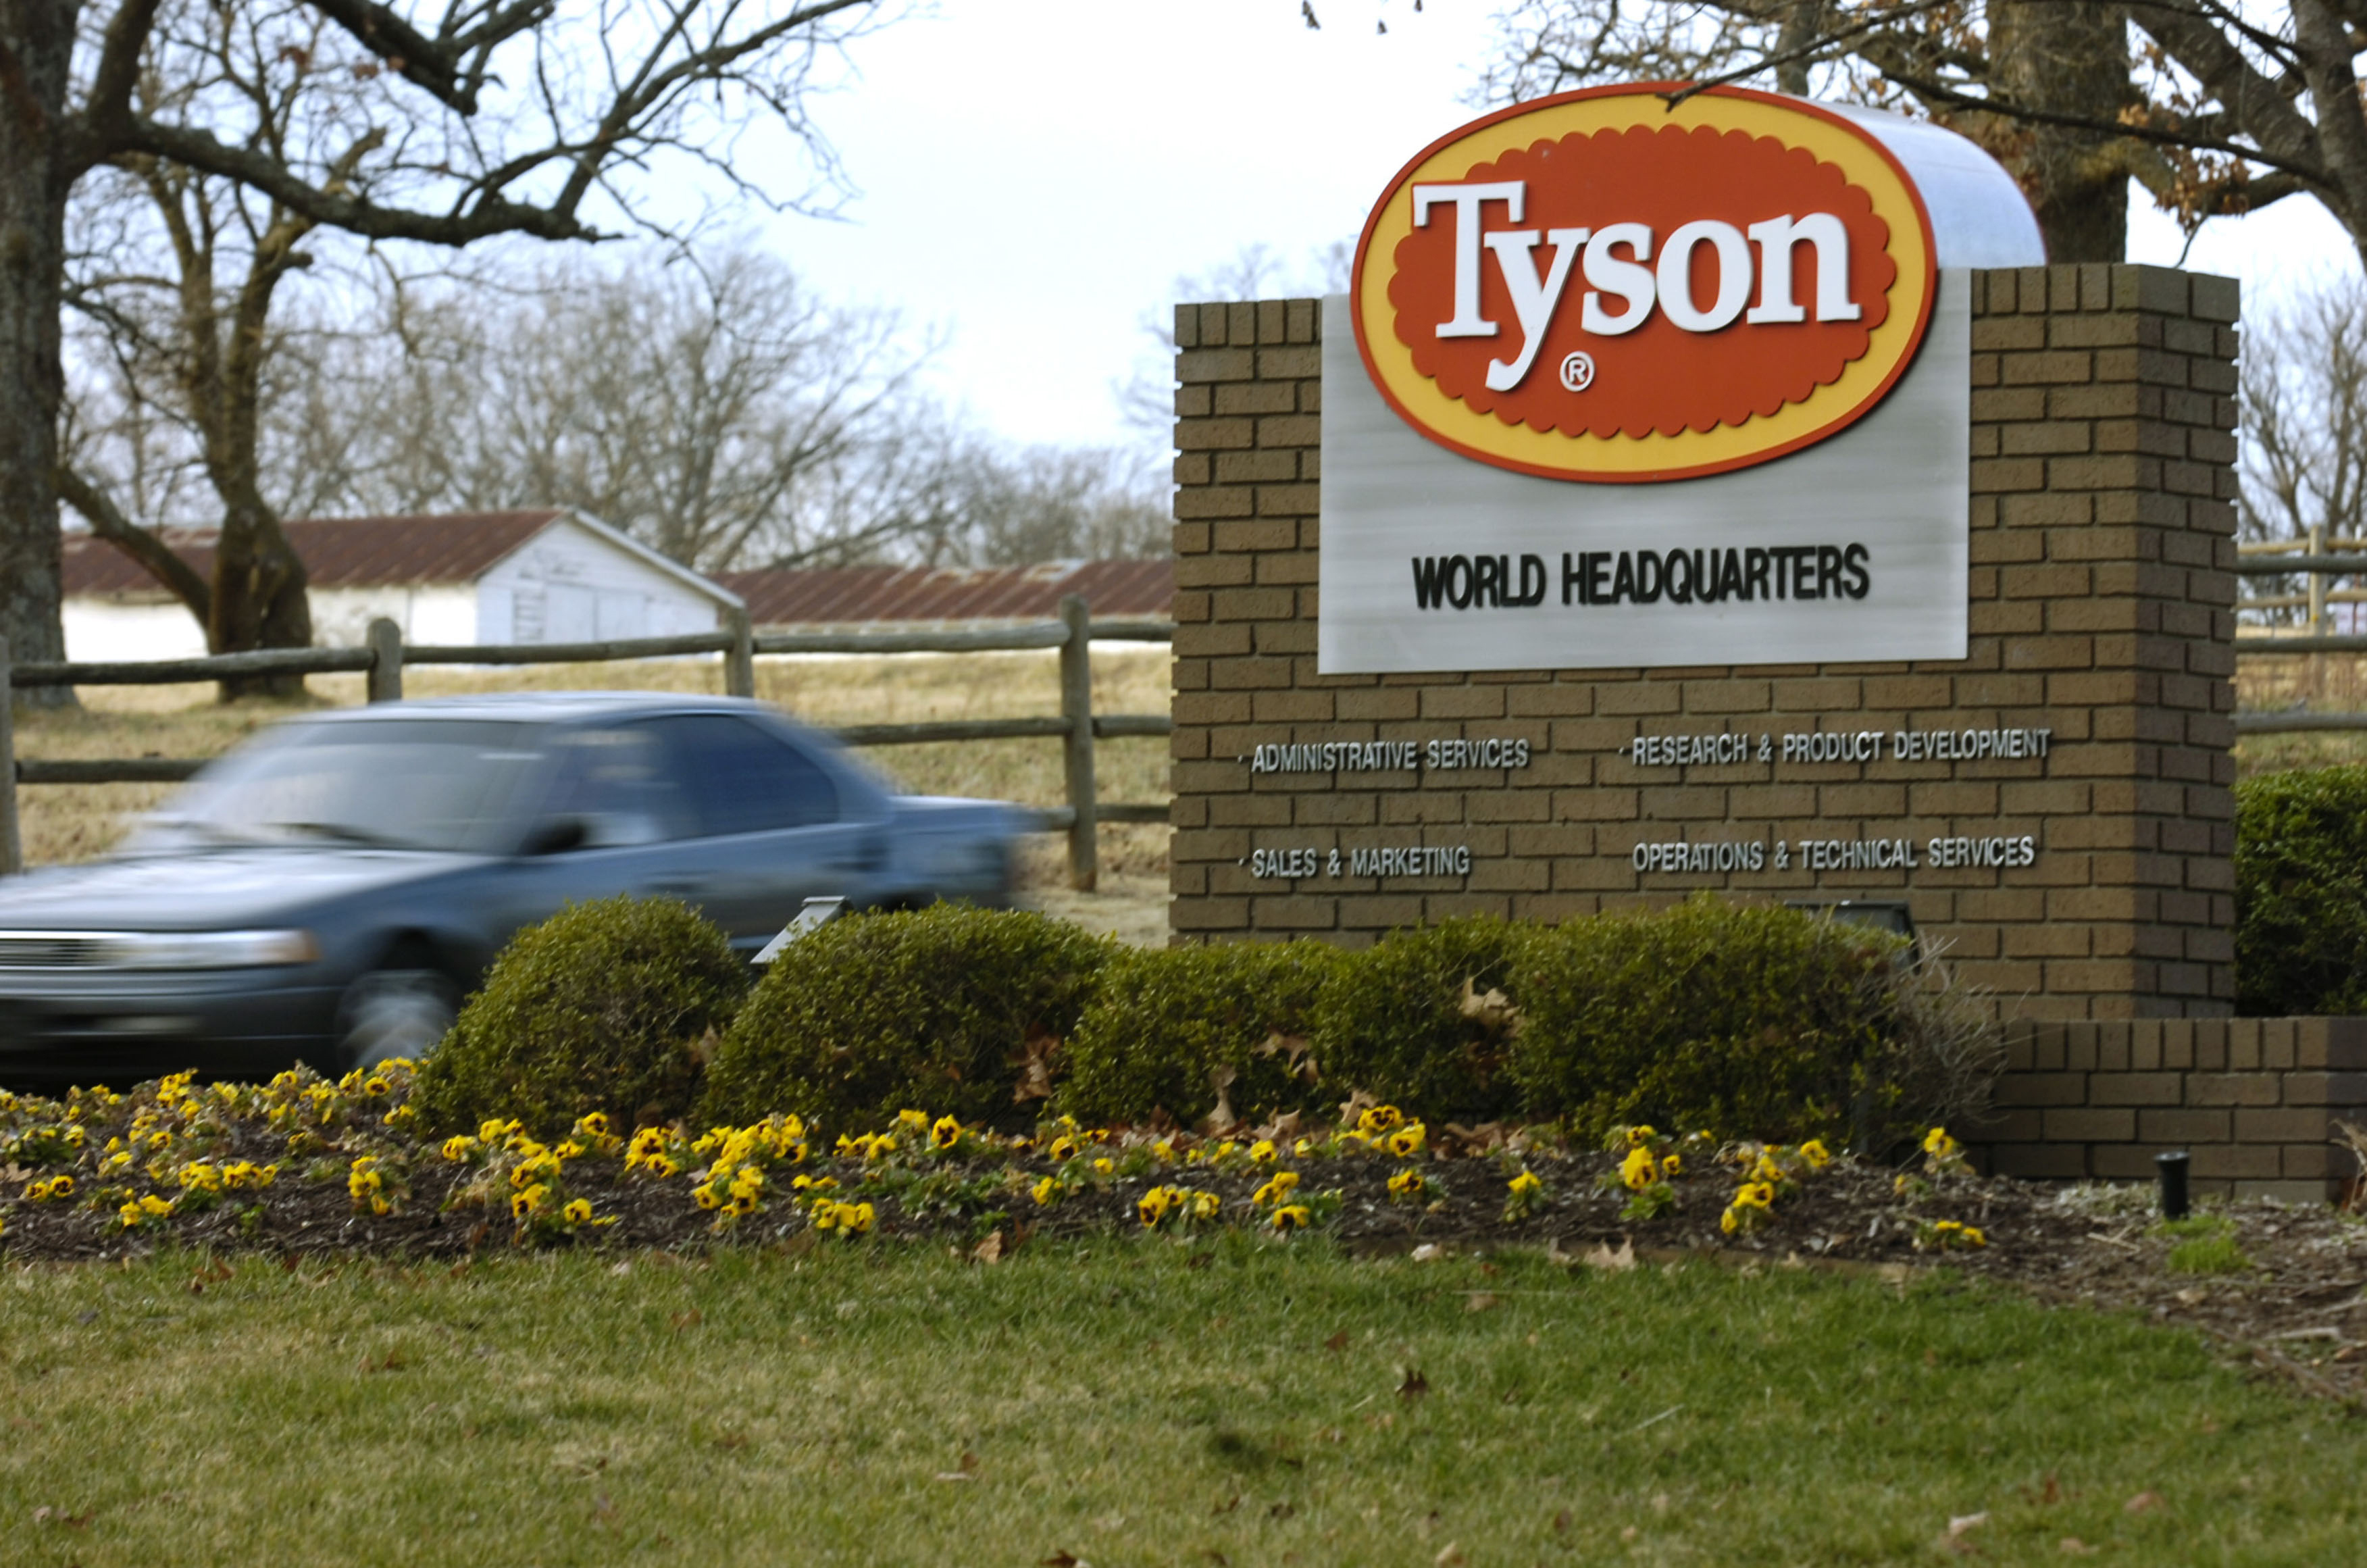 In this Jan. 29, 2006, file photo, a car passes in front of a Tyson Foods Inc., sign at Tyson headquarters in Springdale, Ark. China's decision to ban imports from a single Tyson Foods poultry plant because of concerns about a coronavirus outbreak there puzzled many in the meat industry and raised concerns about whether this could threaten a major market for U.S. meat.